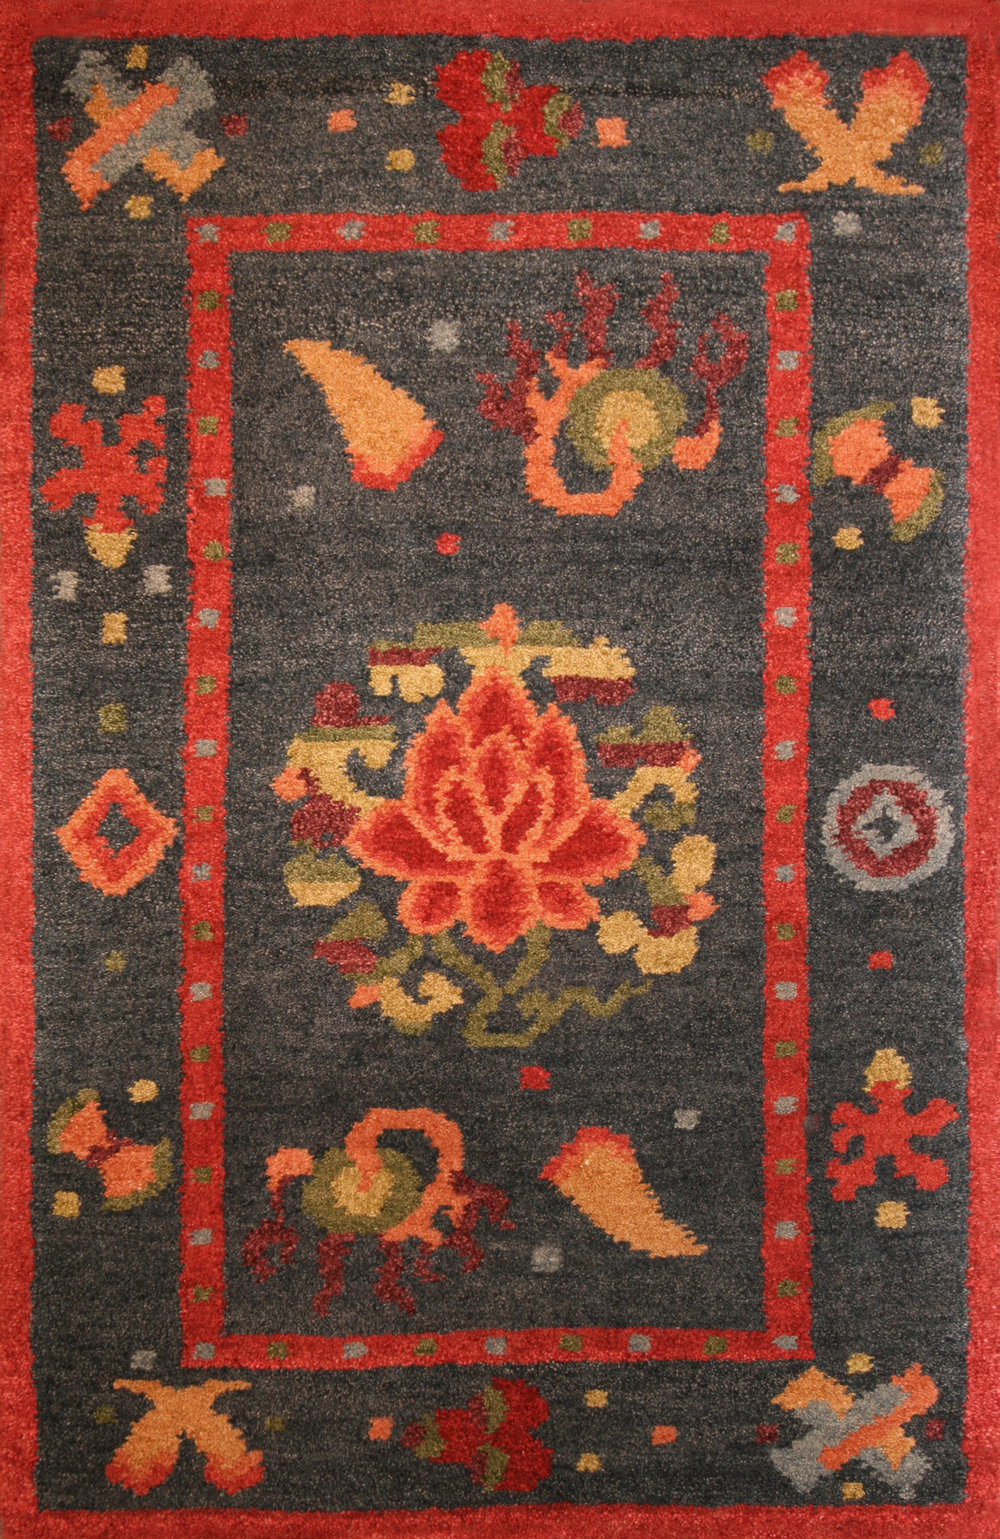 14 Lotus and Amulet, Tibet, 2'x3'